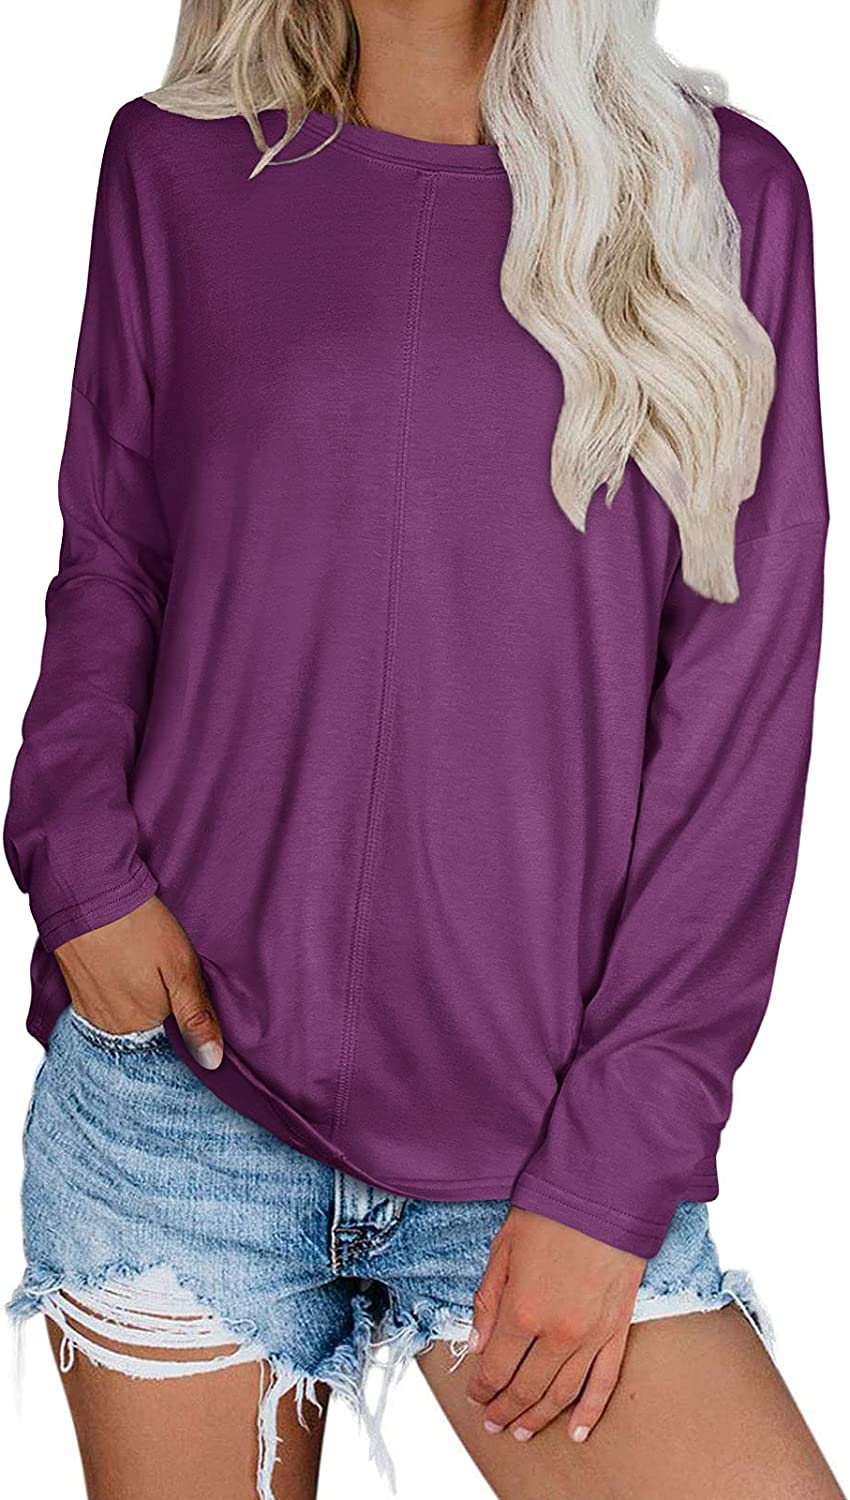 Adreamly Women's Long Sleeve T Shirt Crew Neck Casual Loose Fit Tops Basic Tee